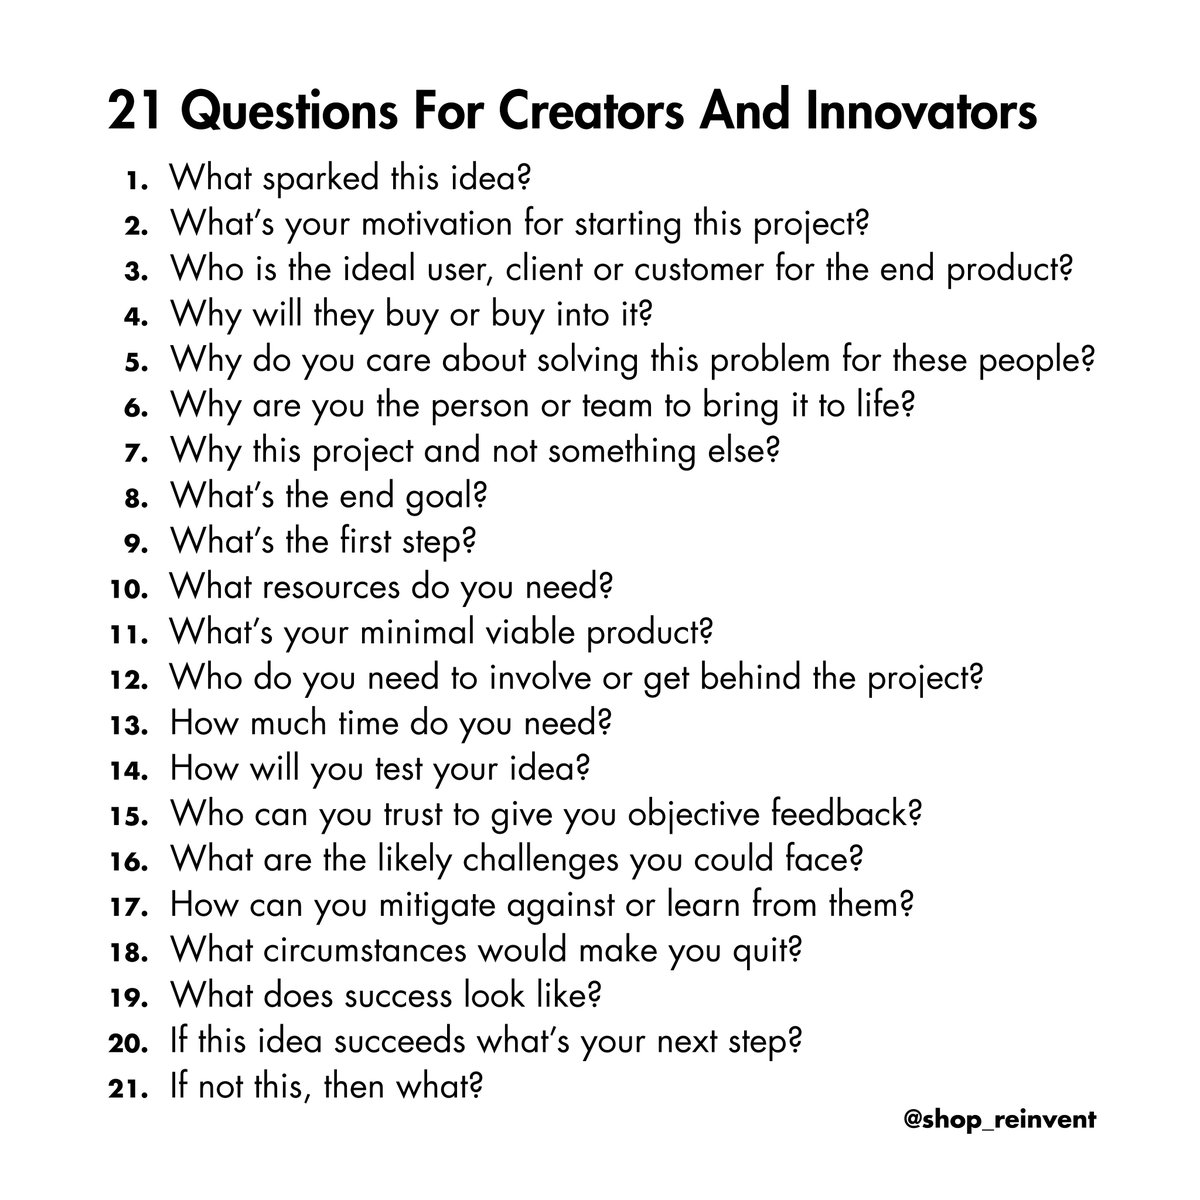 Pamela Sisson On Twitter 21 Questions For Creators And Innovators Creation Innovation Ideas Success Entrepreneur Goals Business Money Finance